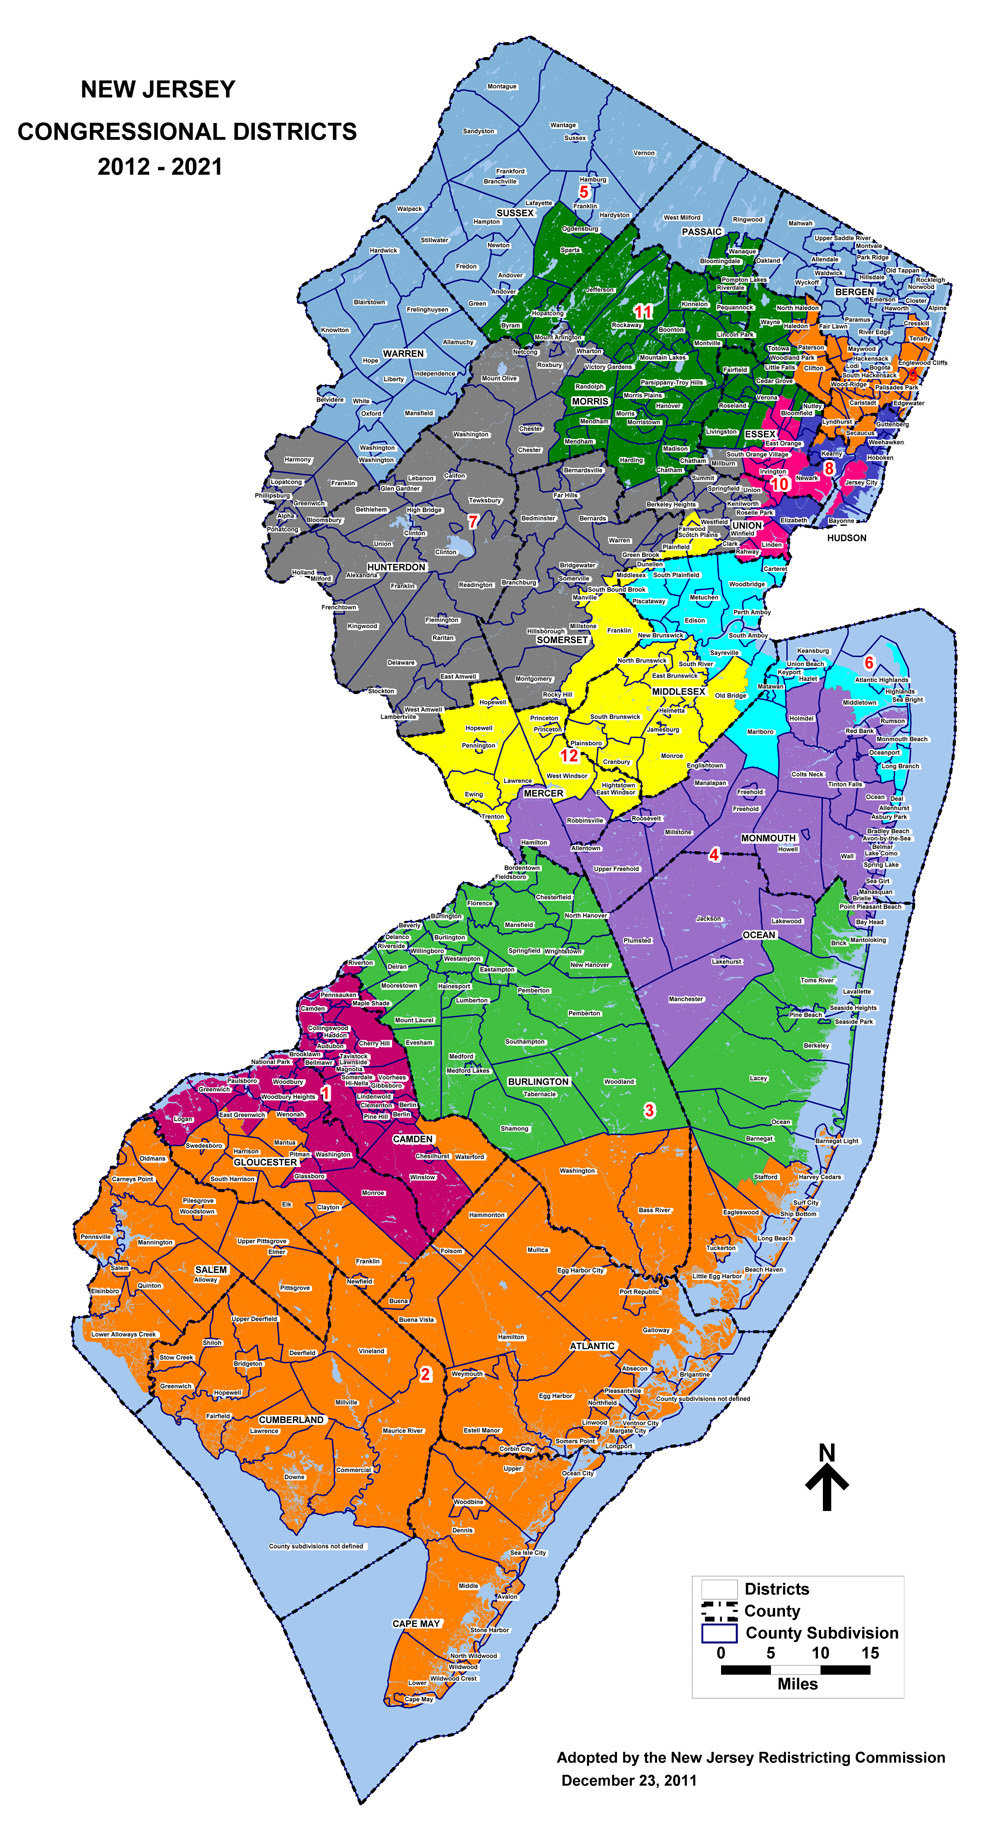 New Jersey 2014 Primary Election